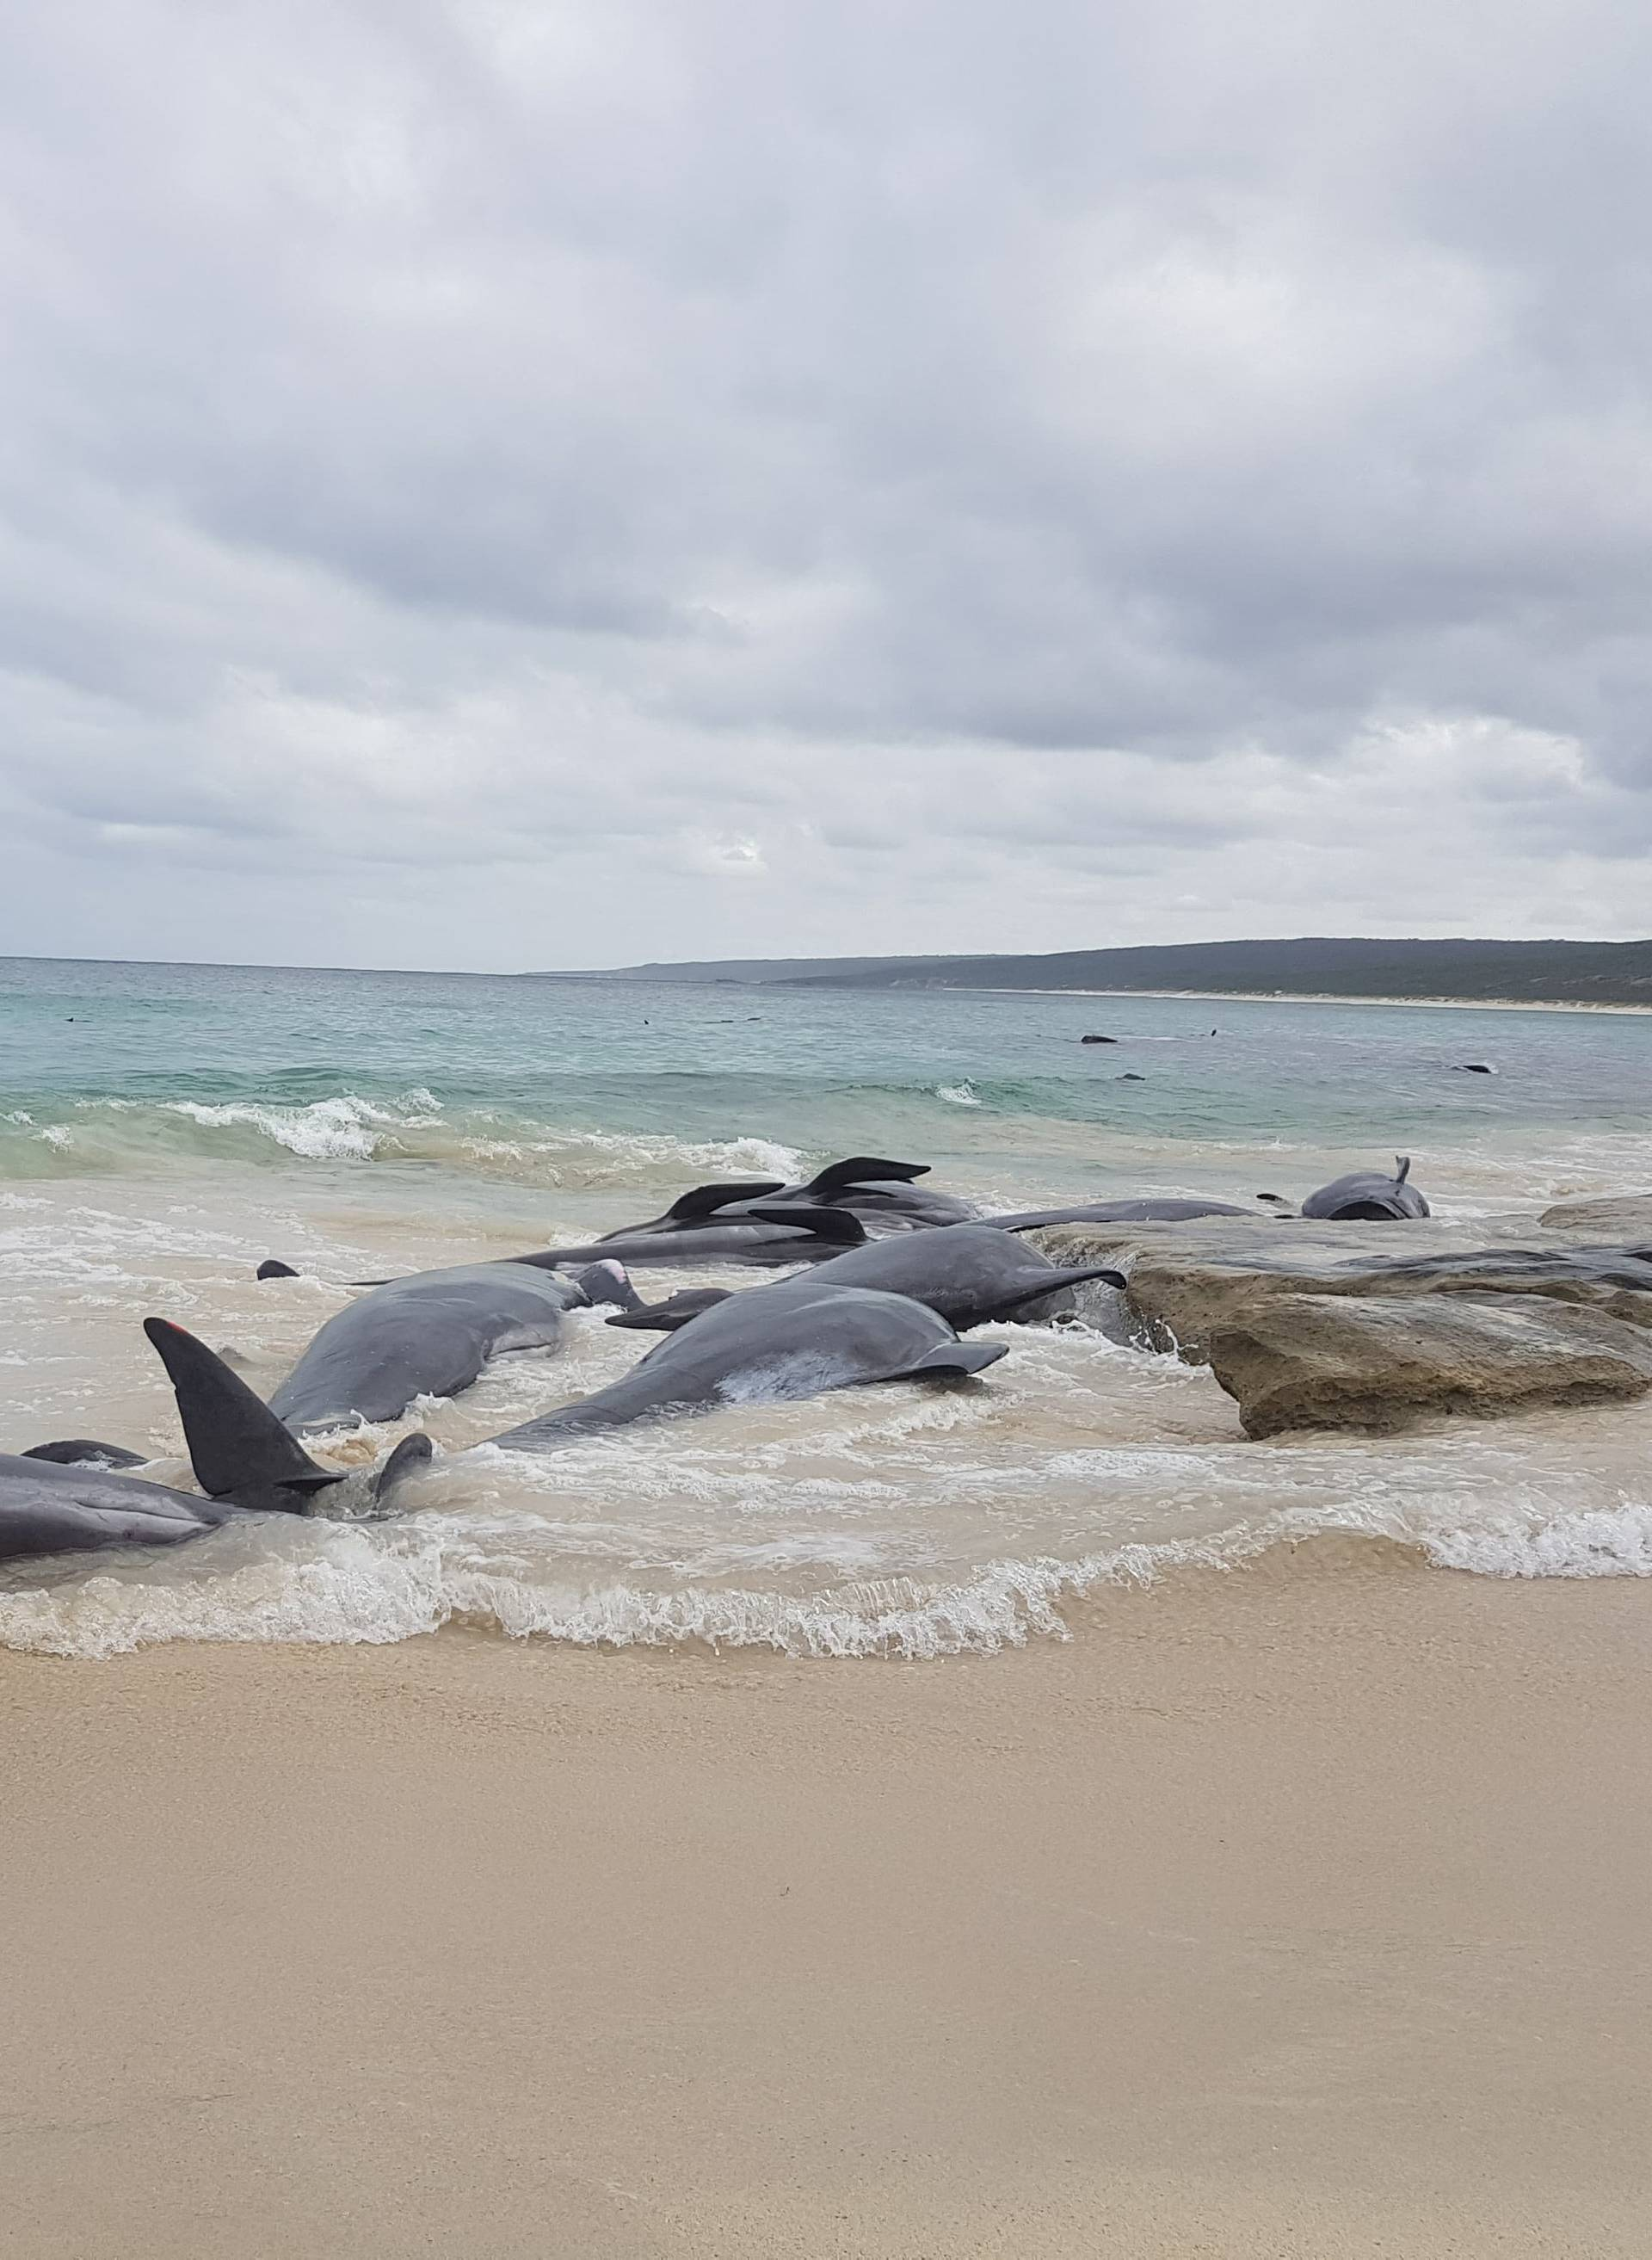 Stranded whales on the beach at Hamelin Bay